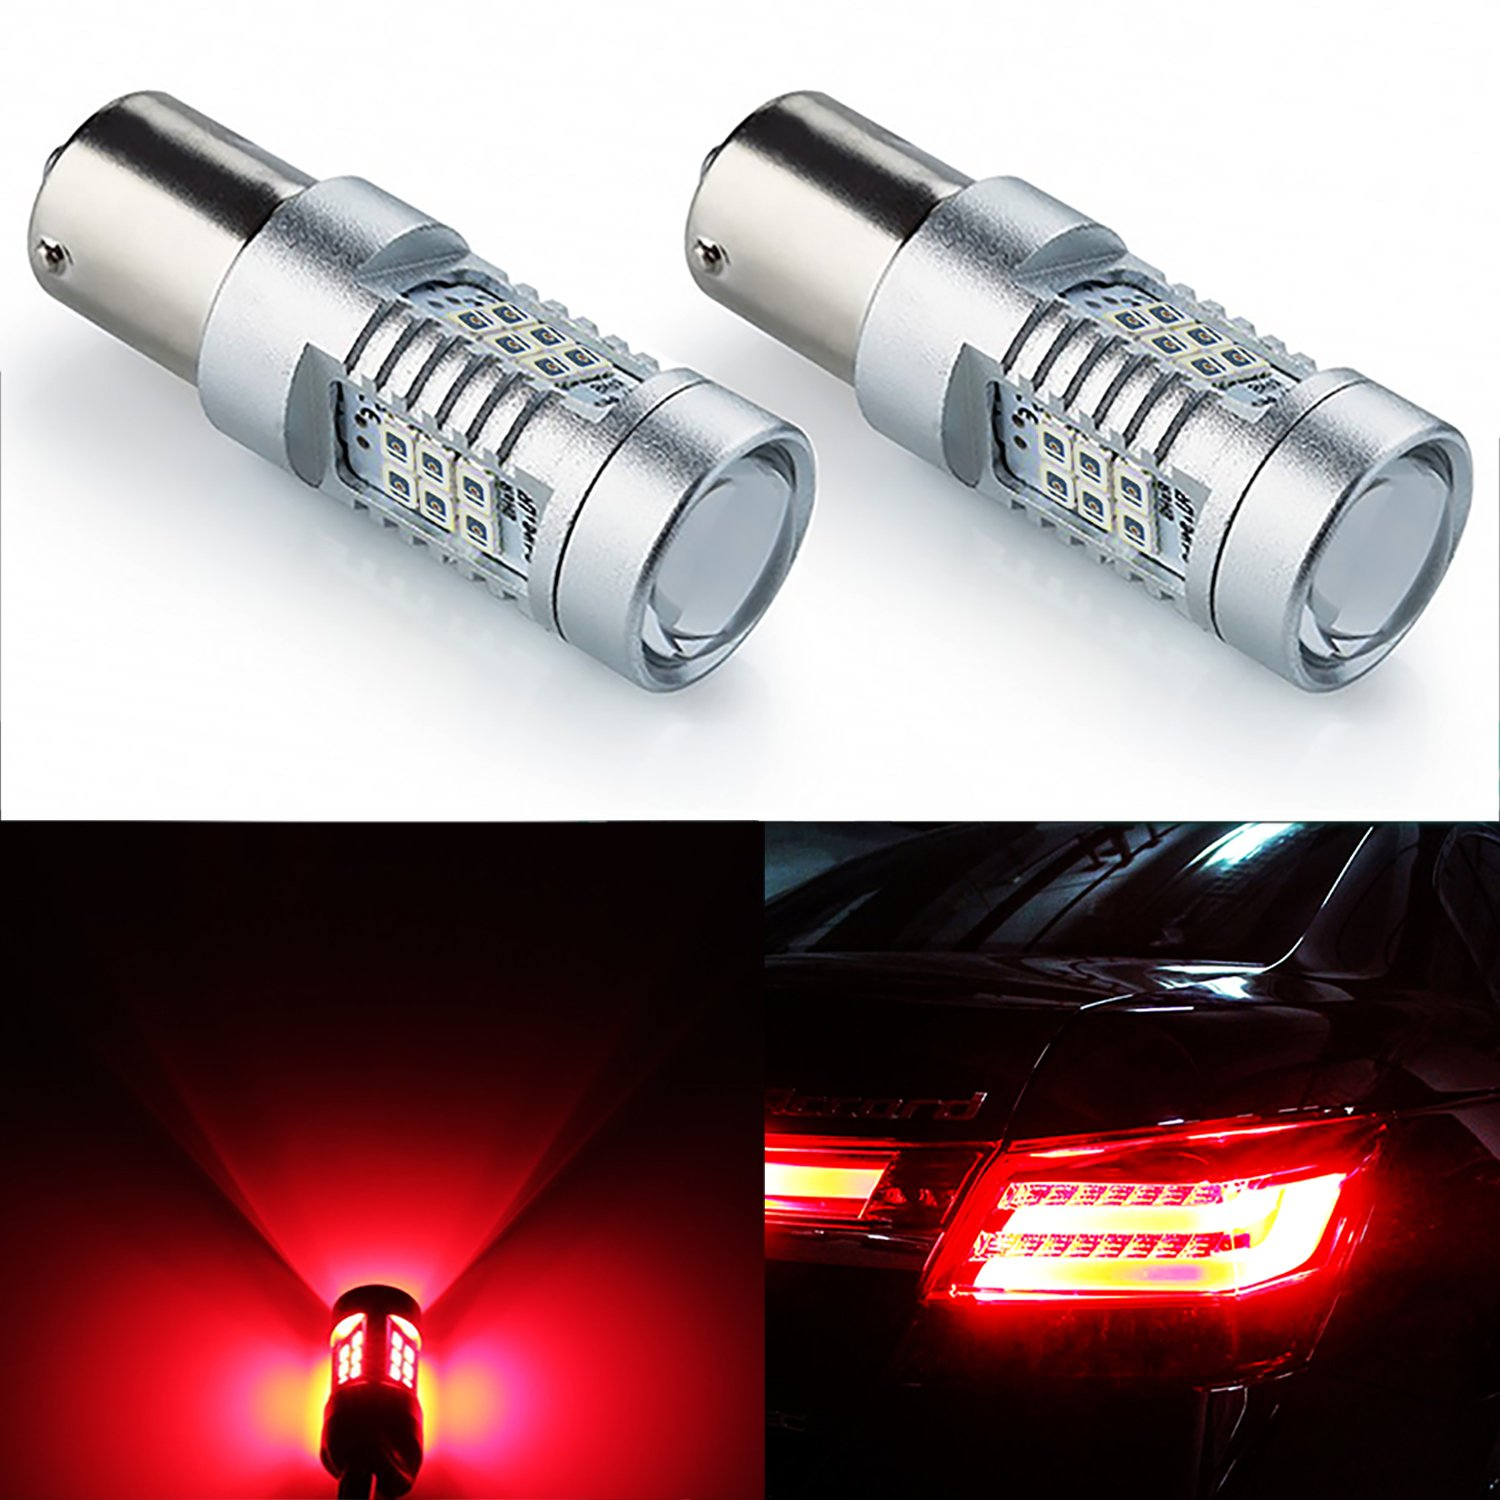 Jdm Astar Extremely Bright Px Chipsets 1157 2057 2357 Acura Rl Fuse Box 7528 Led Bulbs Brilliant Red Automotive